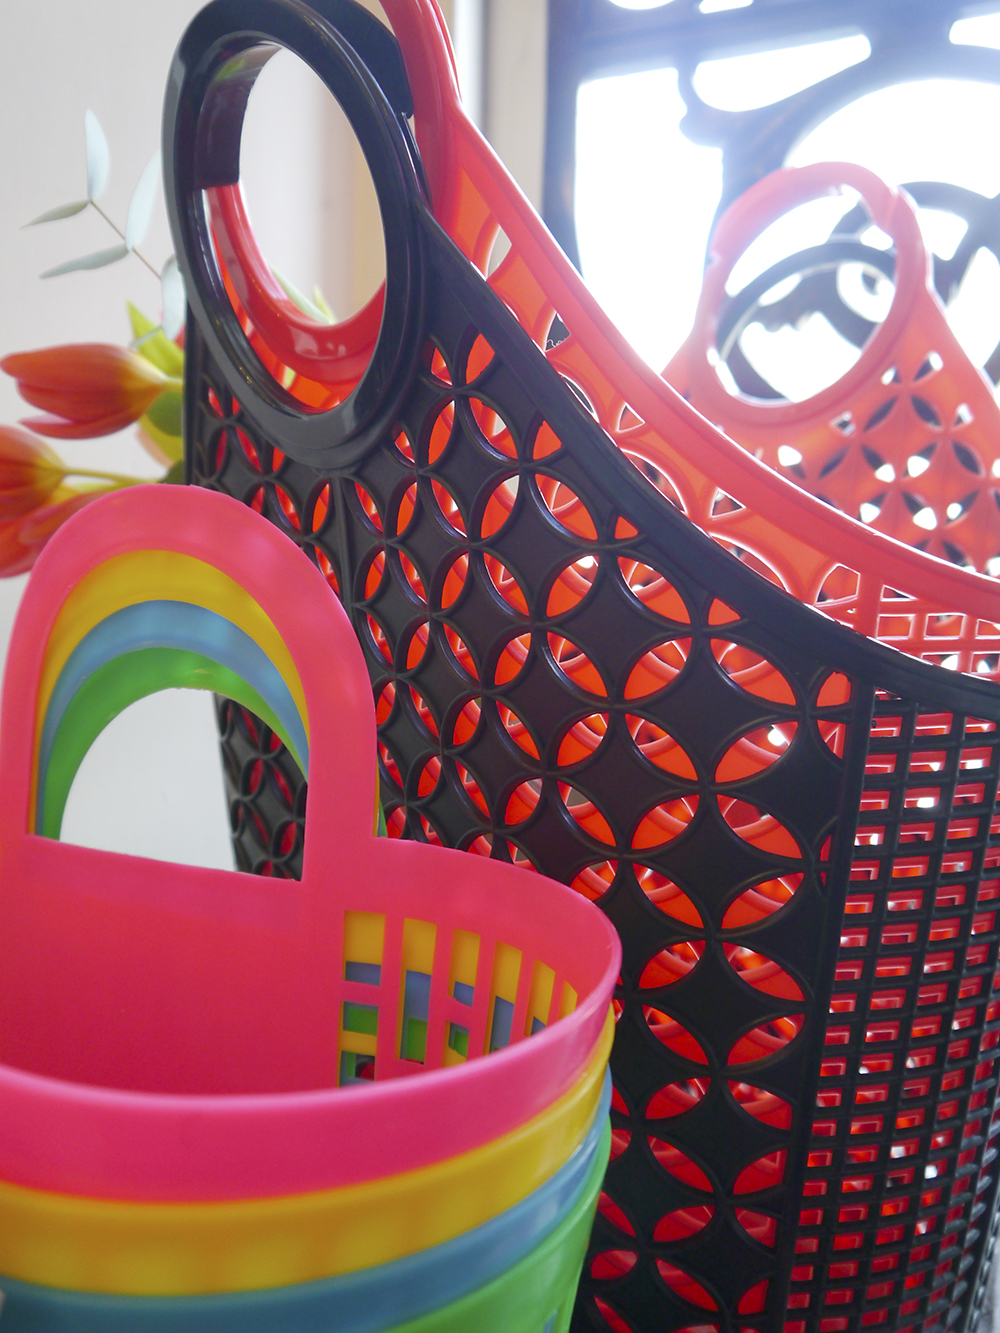 Sun Jellies, plastic baskets, retro bags, vintage style bas, colourful bags, Scottish bloggers, Glasgow, afternoon tea, The Butterfly and the Pi Glasgow, cute bags, neon bags